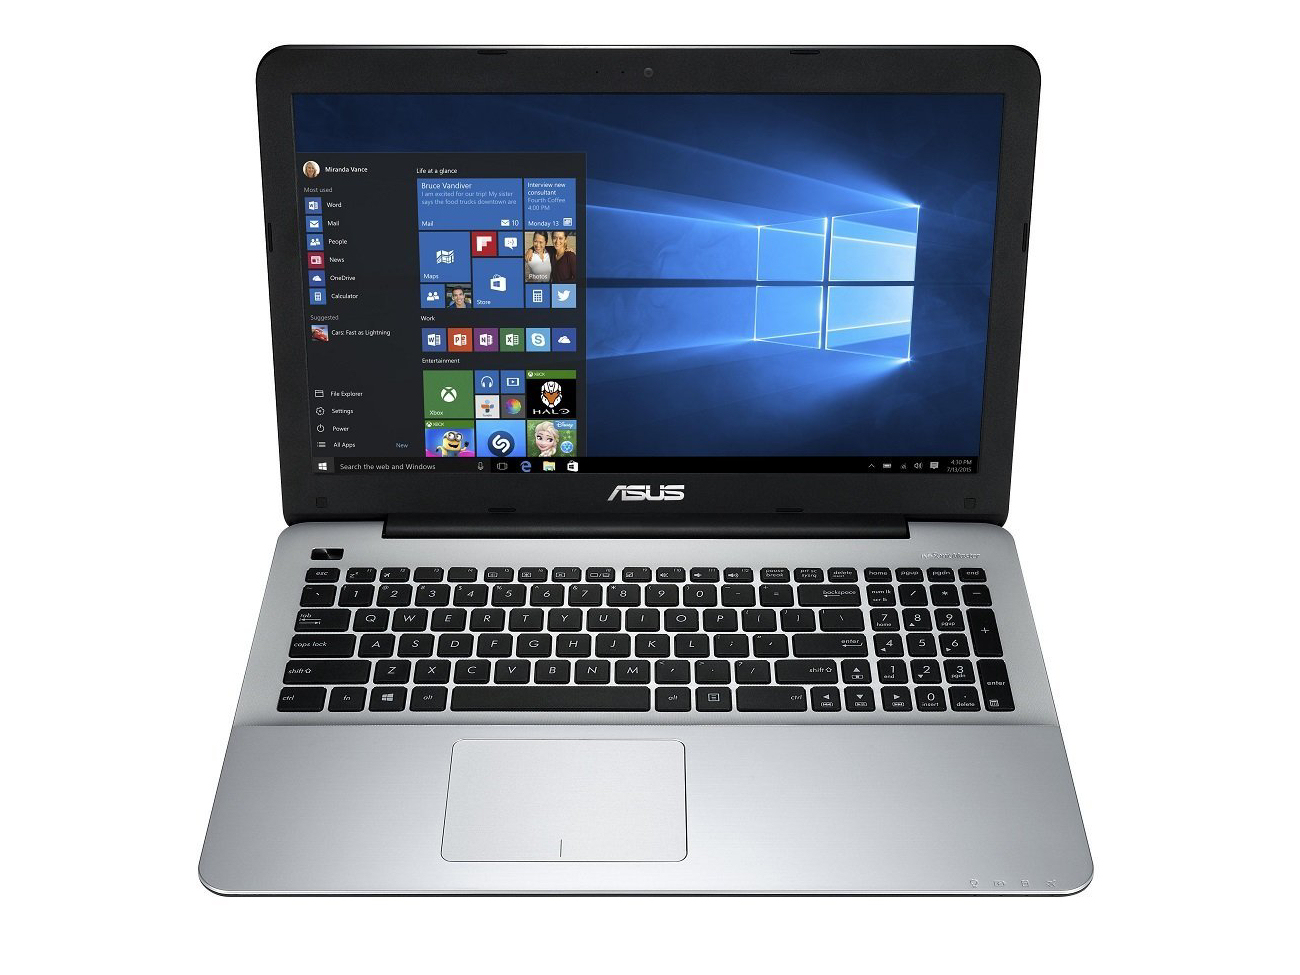 Asus F555ub Xo043t Notebook Review Notebookcheck Net Reviews